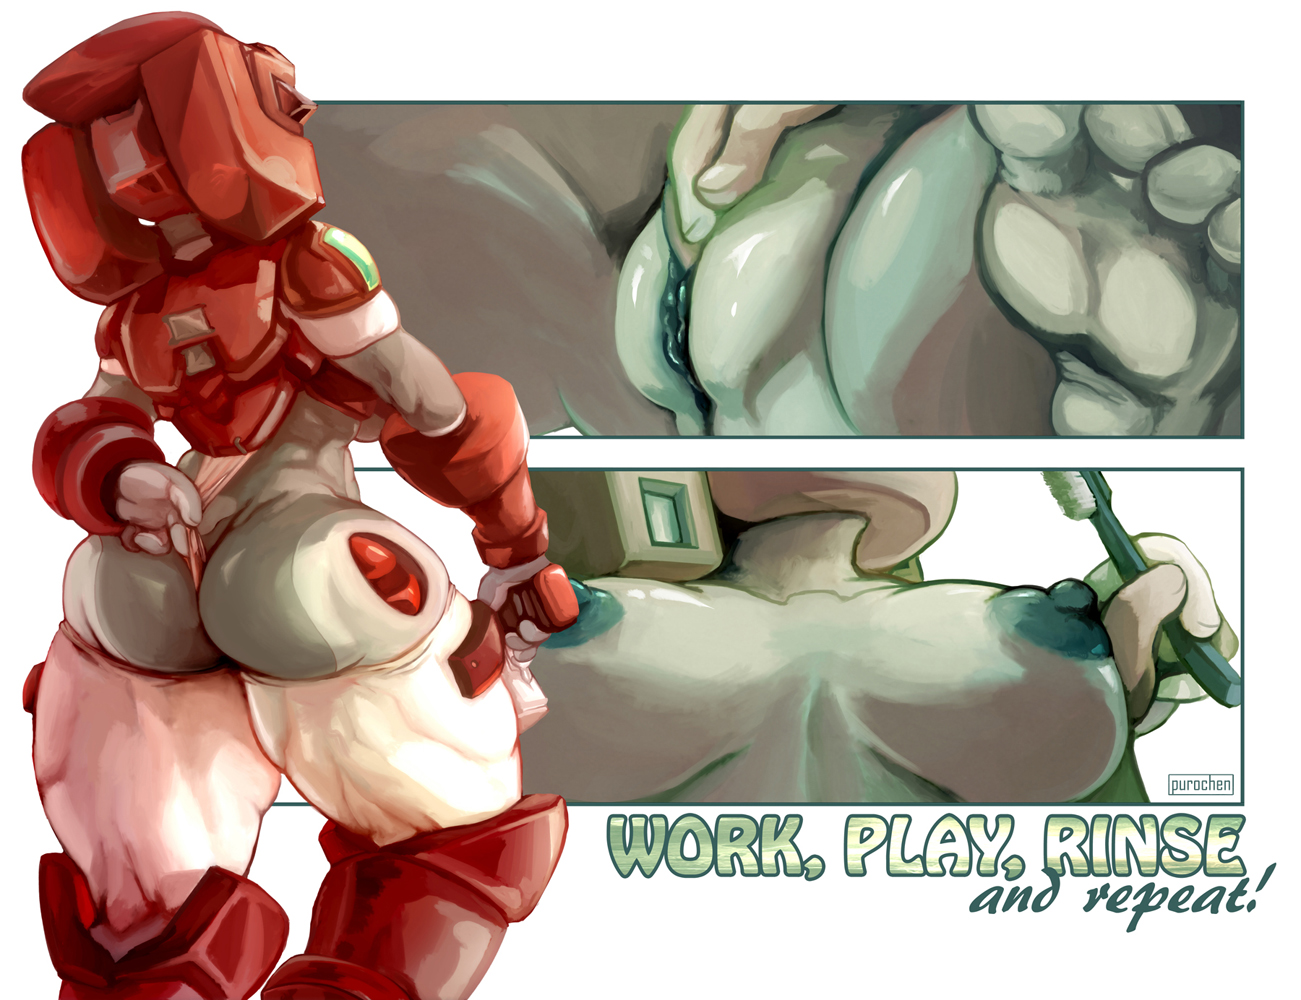 Hentai Proxy pertaining to purochen's smut art lair. highly nsfw, 18+ only. enjoy!